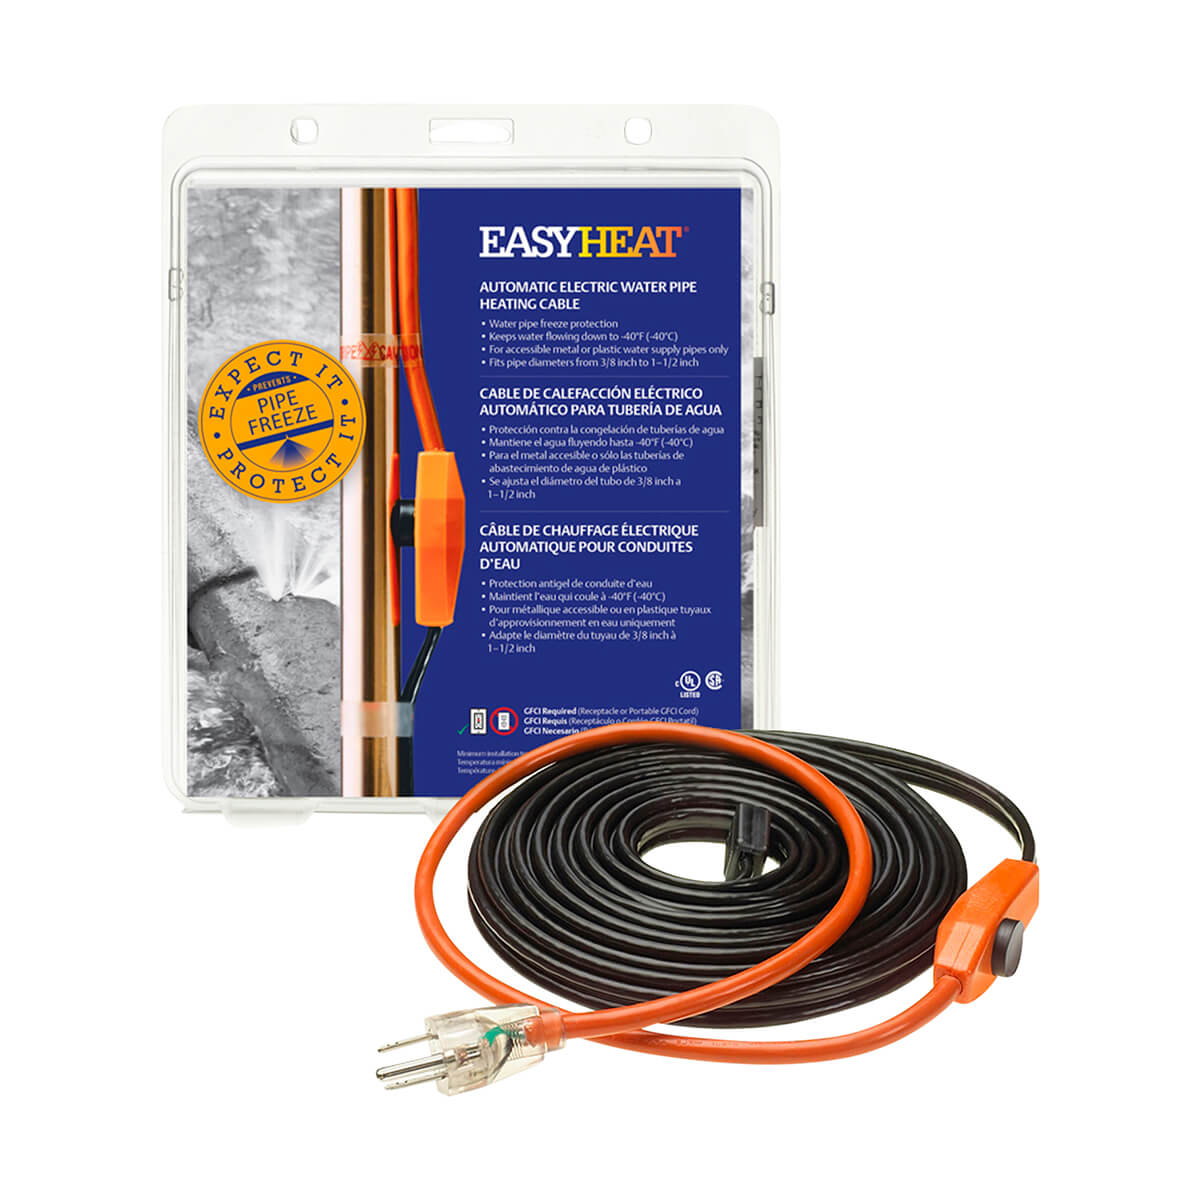 Pipe Heating Cable - 3'